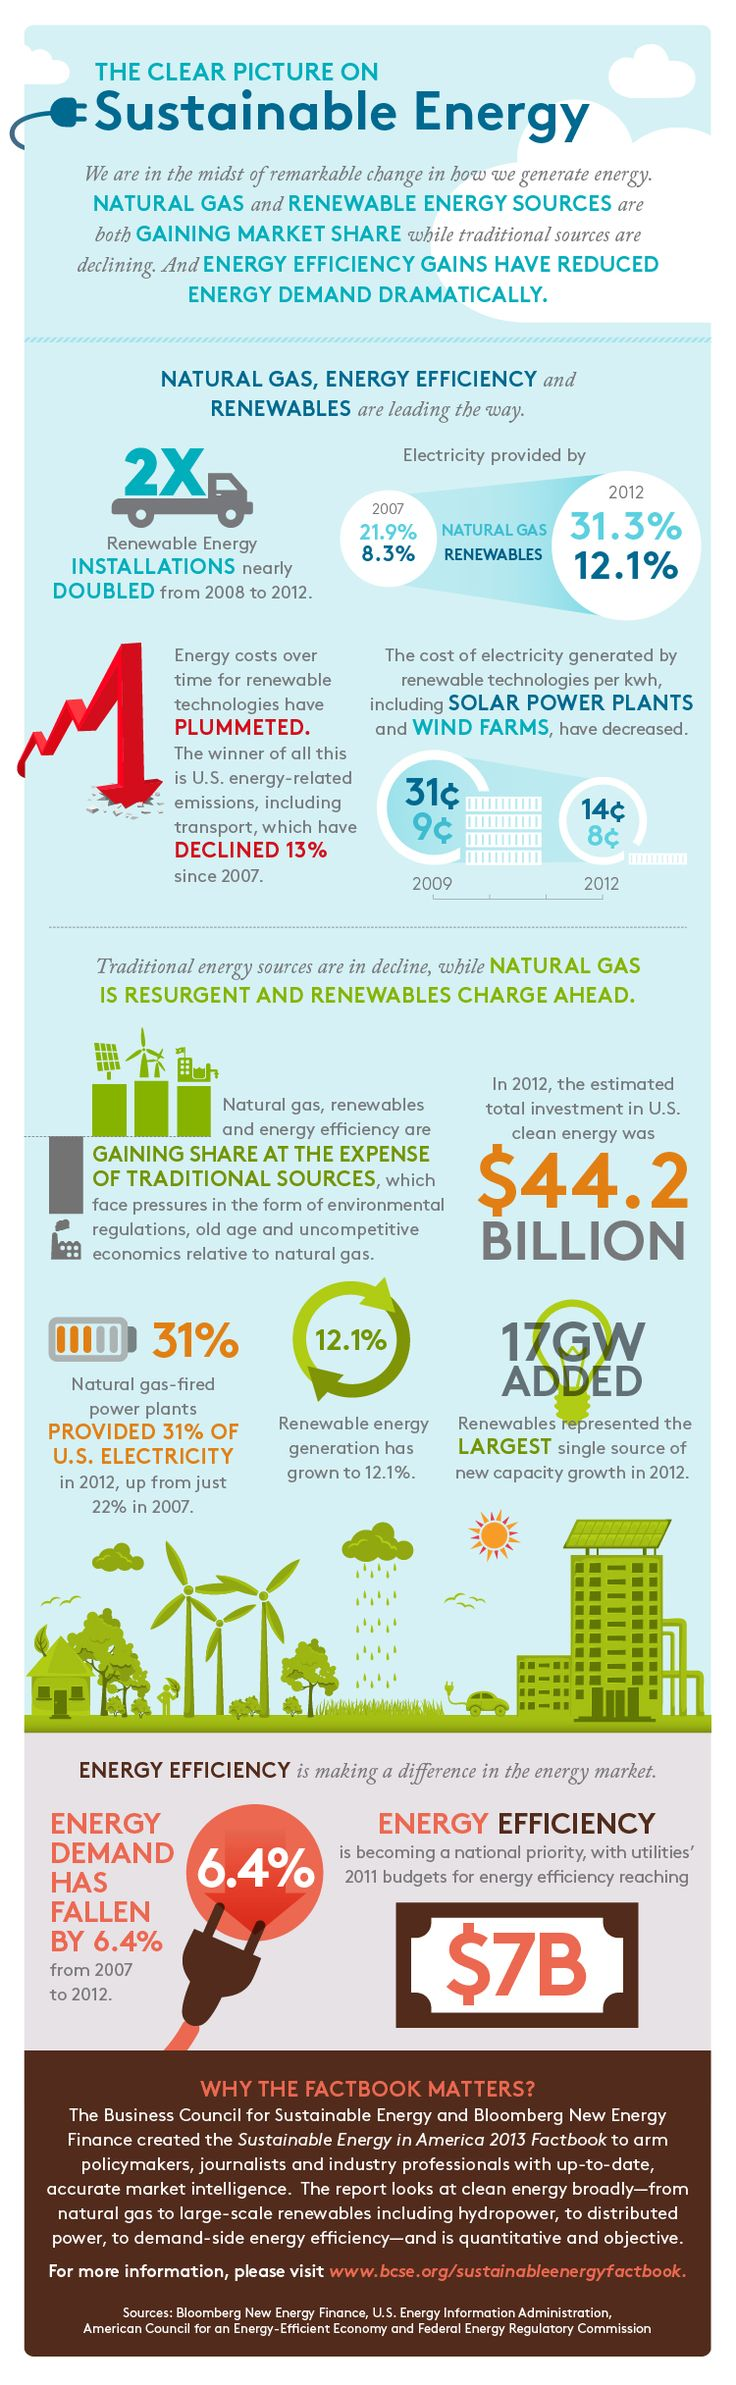 A fresh look at the state of US energy, via the Sustainable Energy in America 2013 Factbook, researched and produced by Bloomberg New Energy Finance and commissioned by the Business Council on Sustainable Energy.